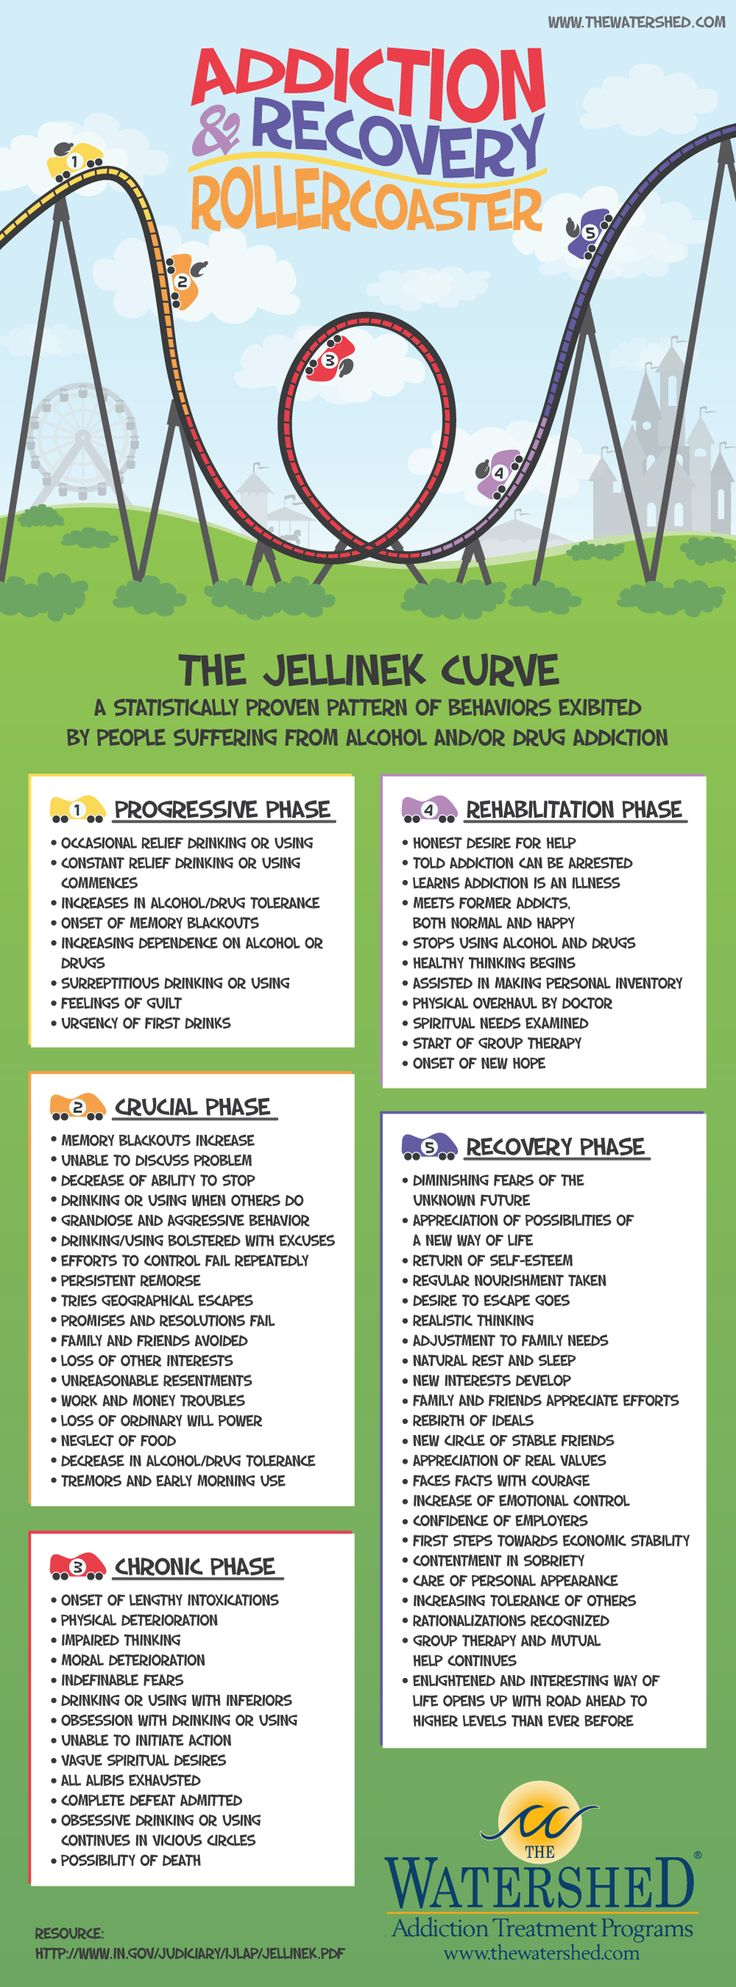 Jellinek Curve Infographic: Addiction To Recovery If you need addiction recovery treatment, consider private pay drug rehab in Panama. Going out of country preserves your privacy. Executive and luxurious, but affordable in Panama. CLICK HERE for more info: https:www.serenityvista.com